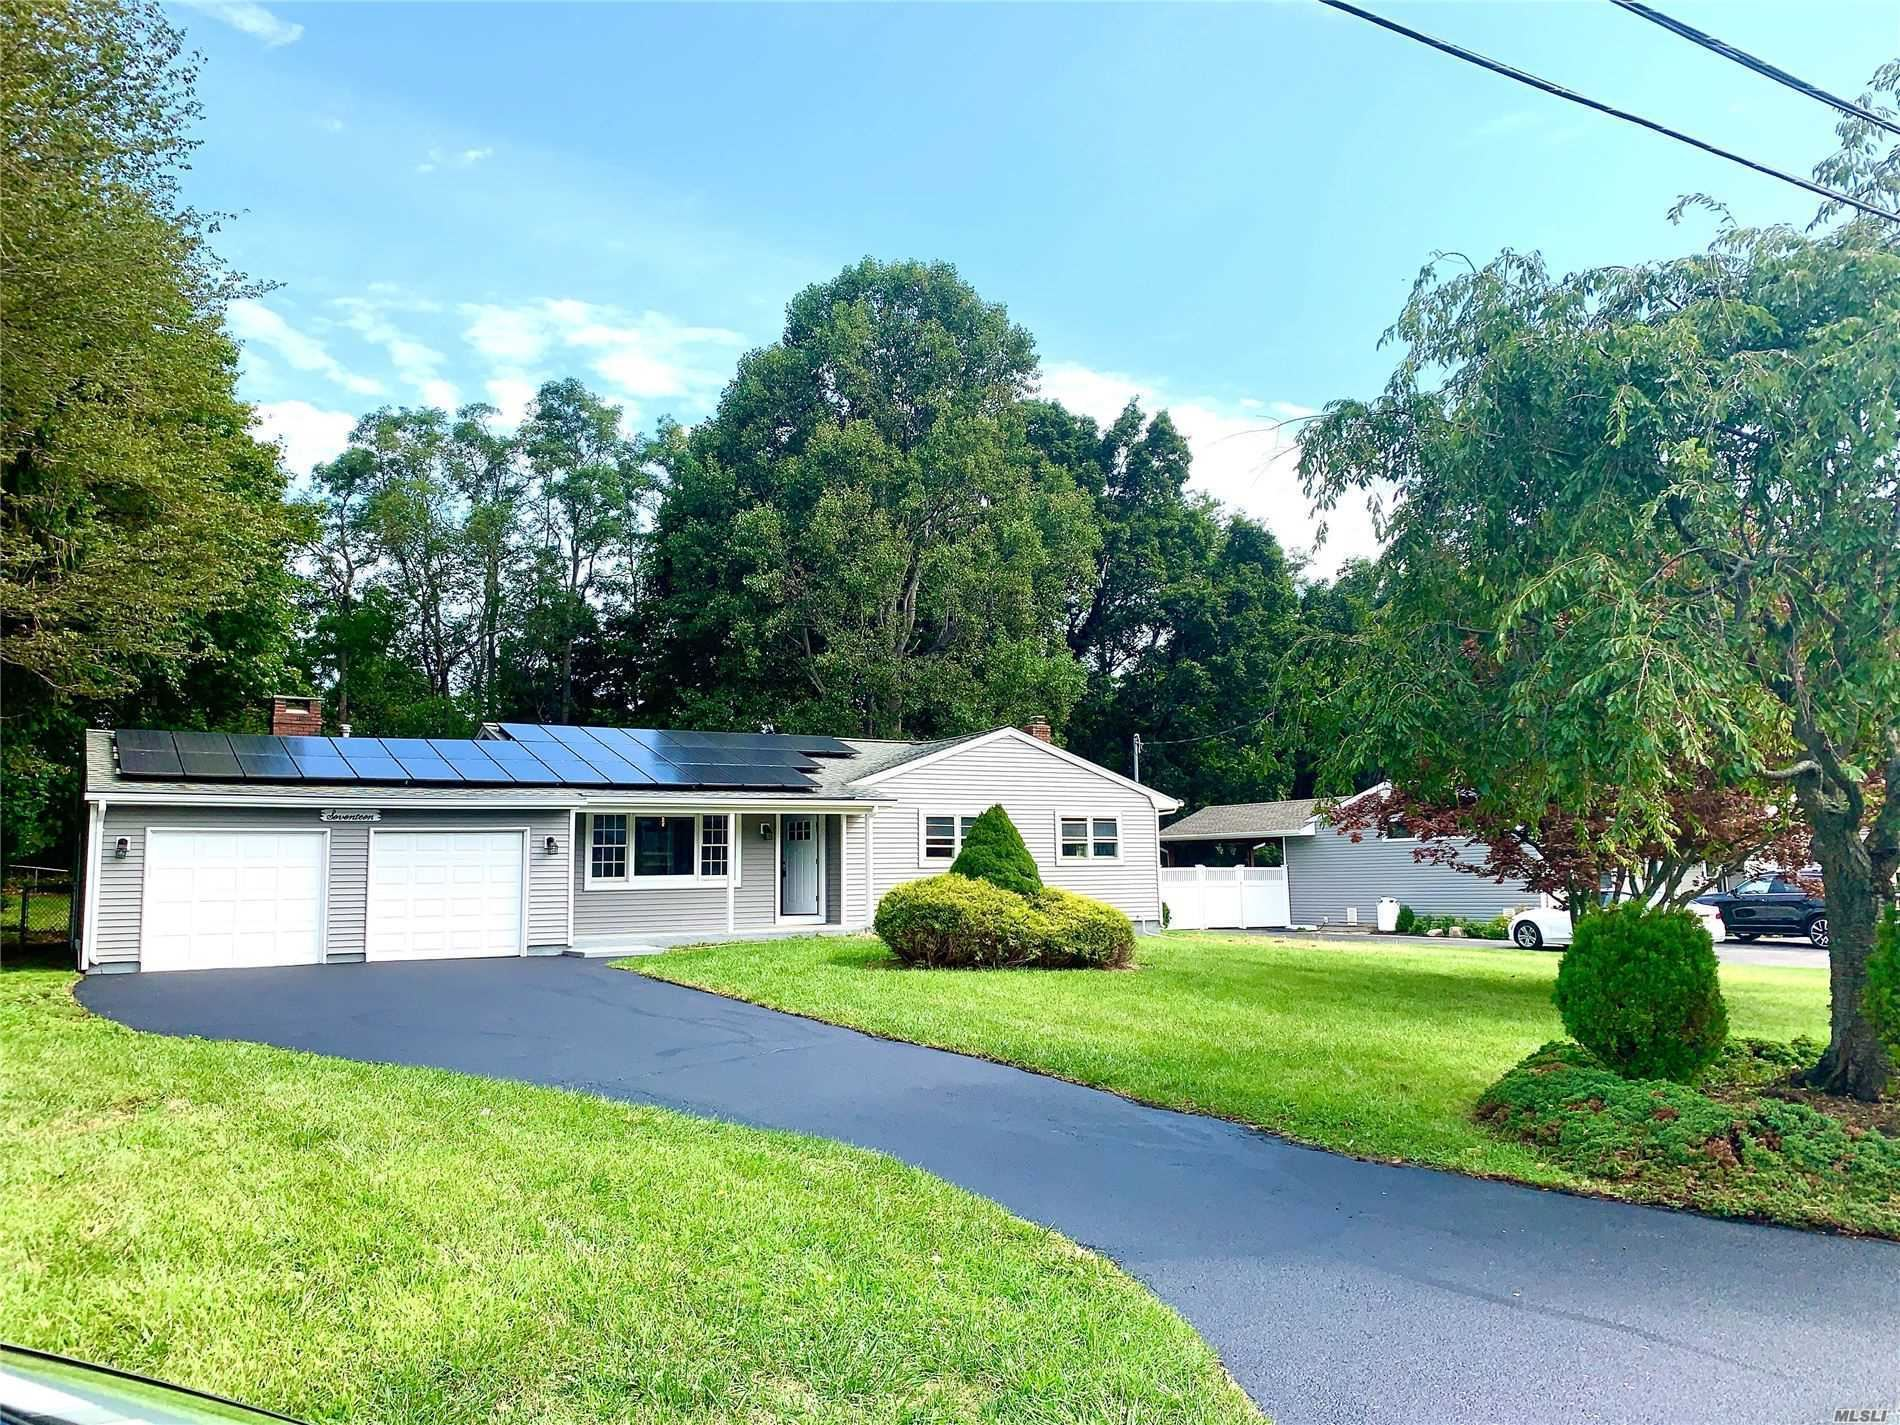 17 Heather Lane, Miller Place, NY 11764 - MLS#: 3245412